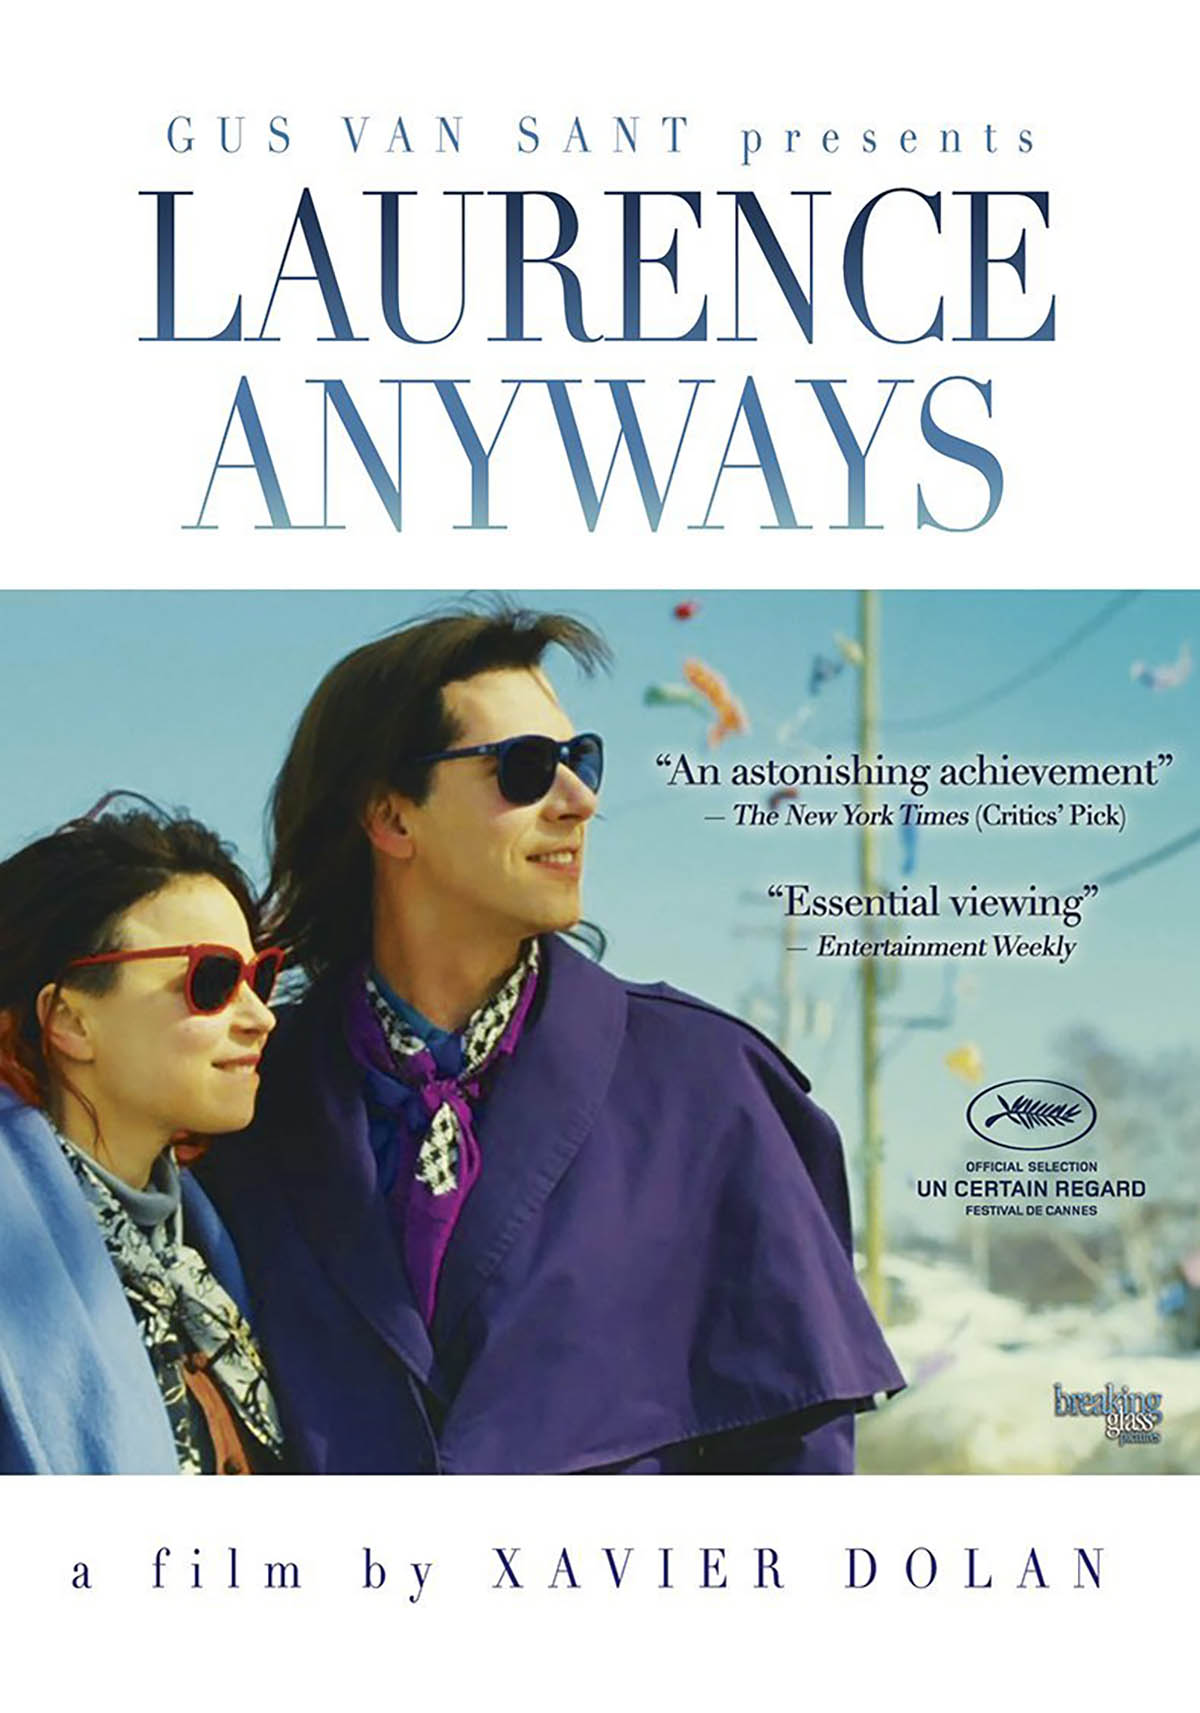 Blu-ray Review: Laurence Anyways - Slant Magazine